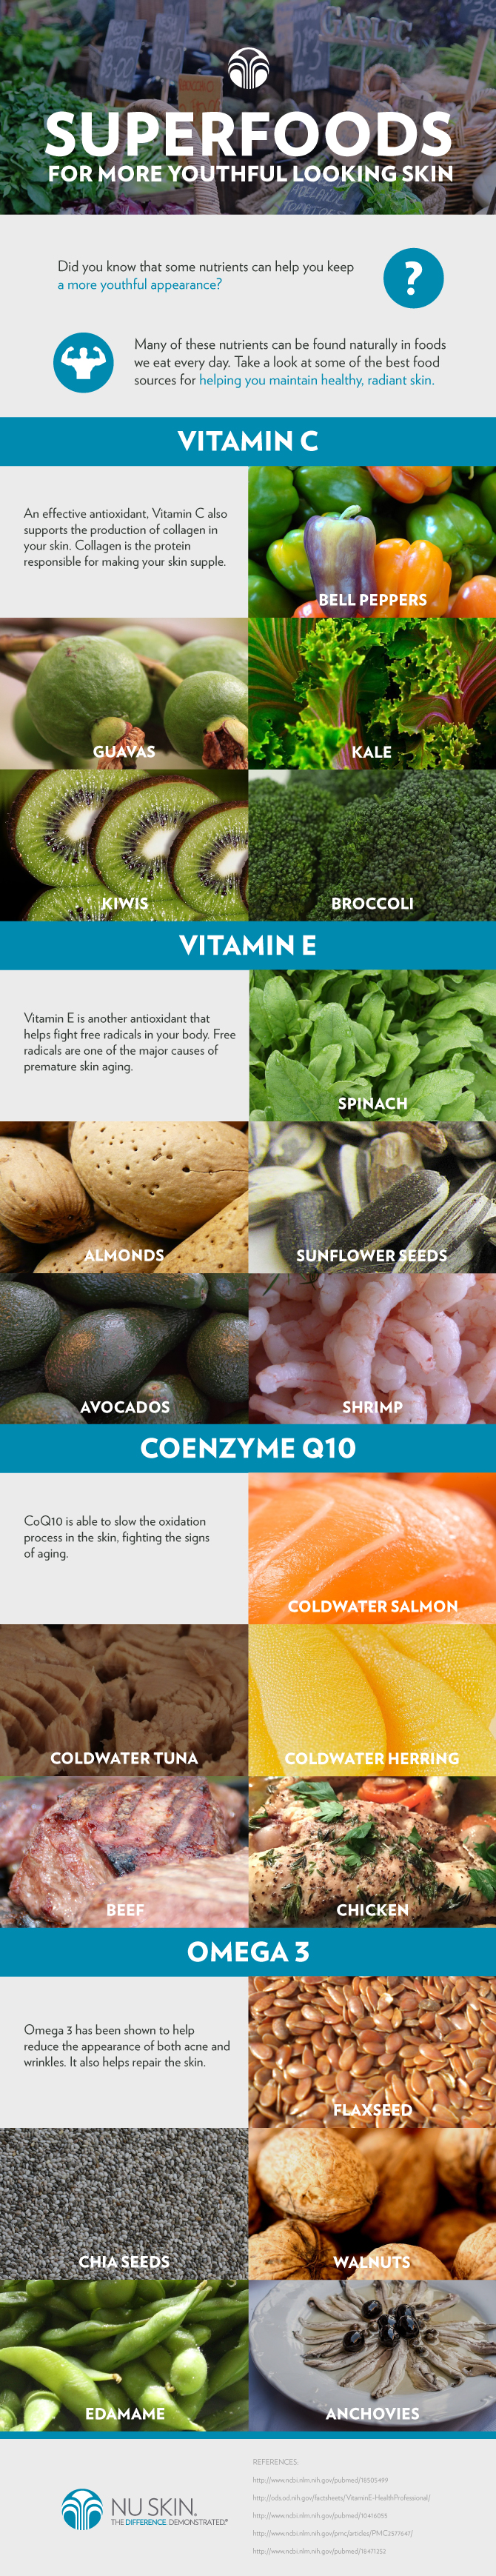 5 Superfoods for Healthier, More Youthful Skin Infographic vitamin c, vitamin e, coenzyme Q10, Omega 3